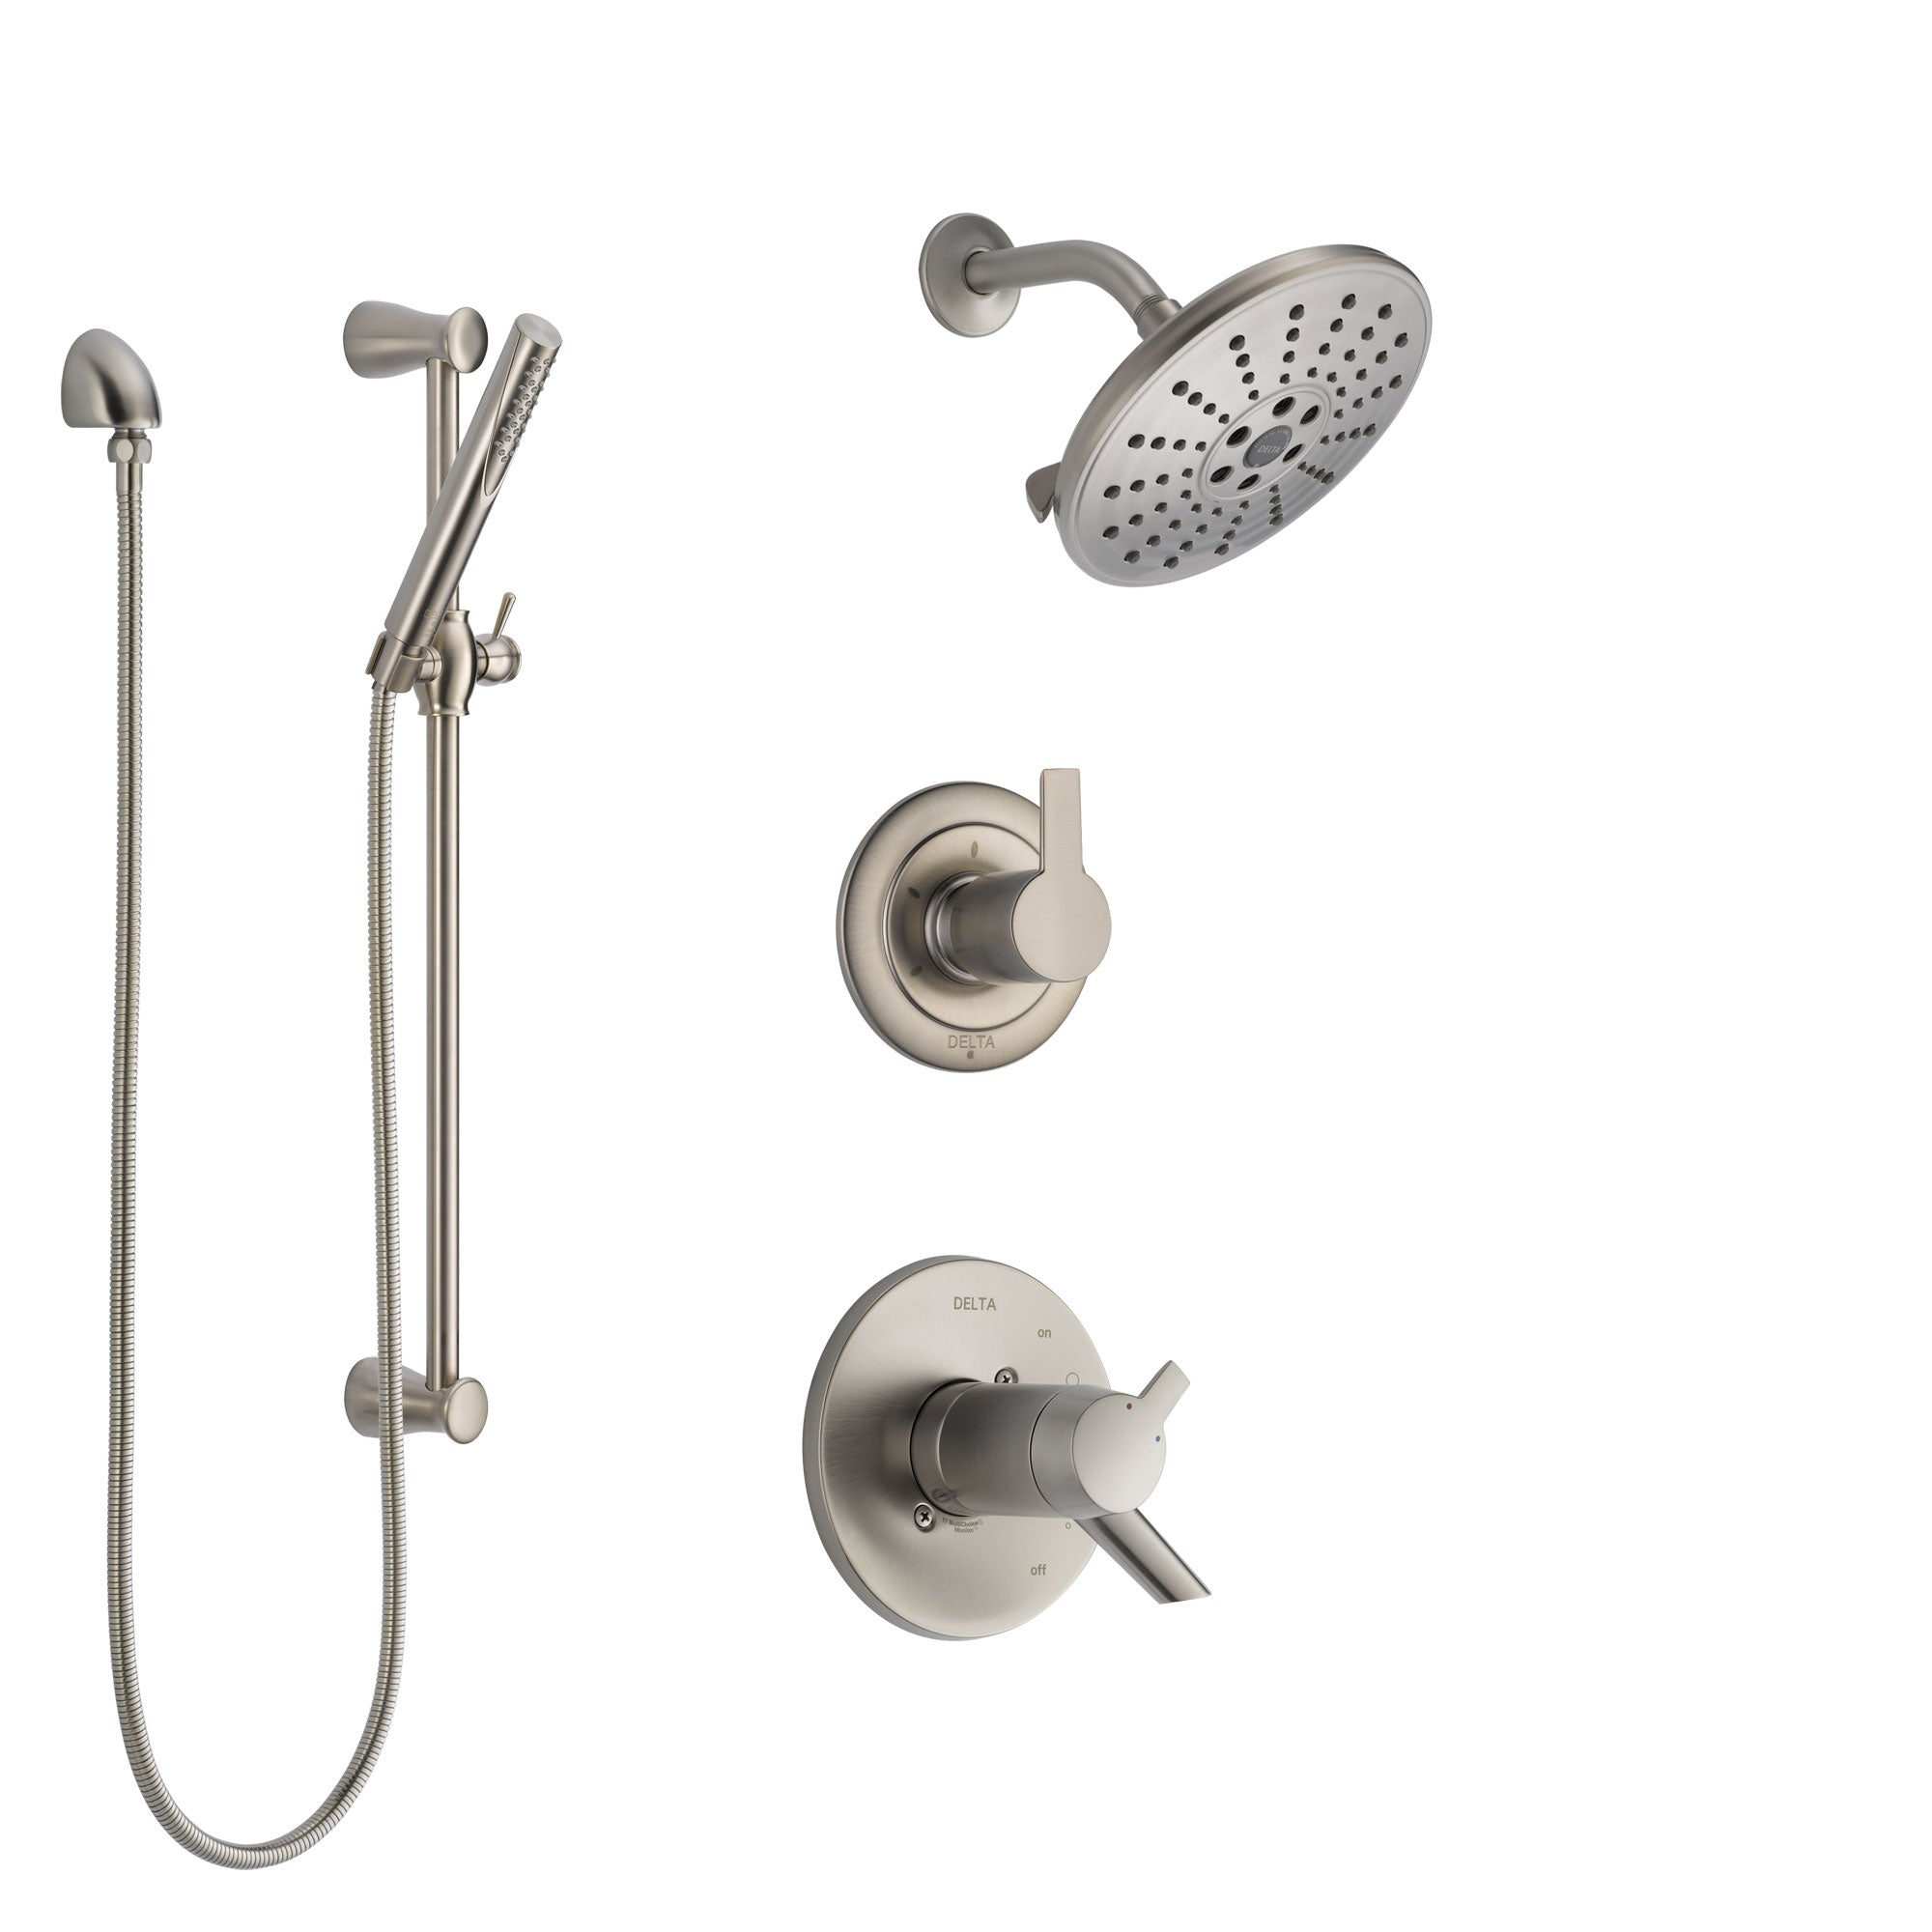 Delta Compel Dual Thermostatic Control Handle Stainless Steel Finish Shower System, Diverter, Showerhead, and Hand Shower with Slidebar SS17T2611SS5